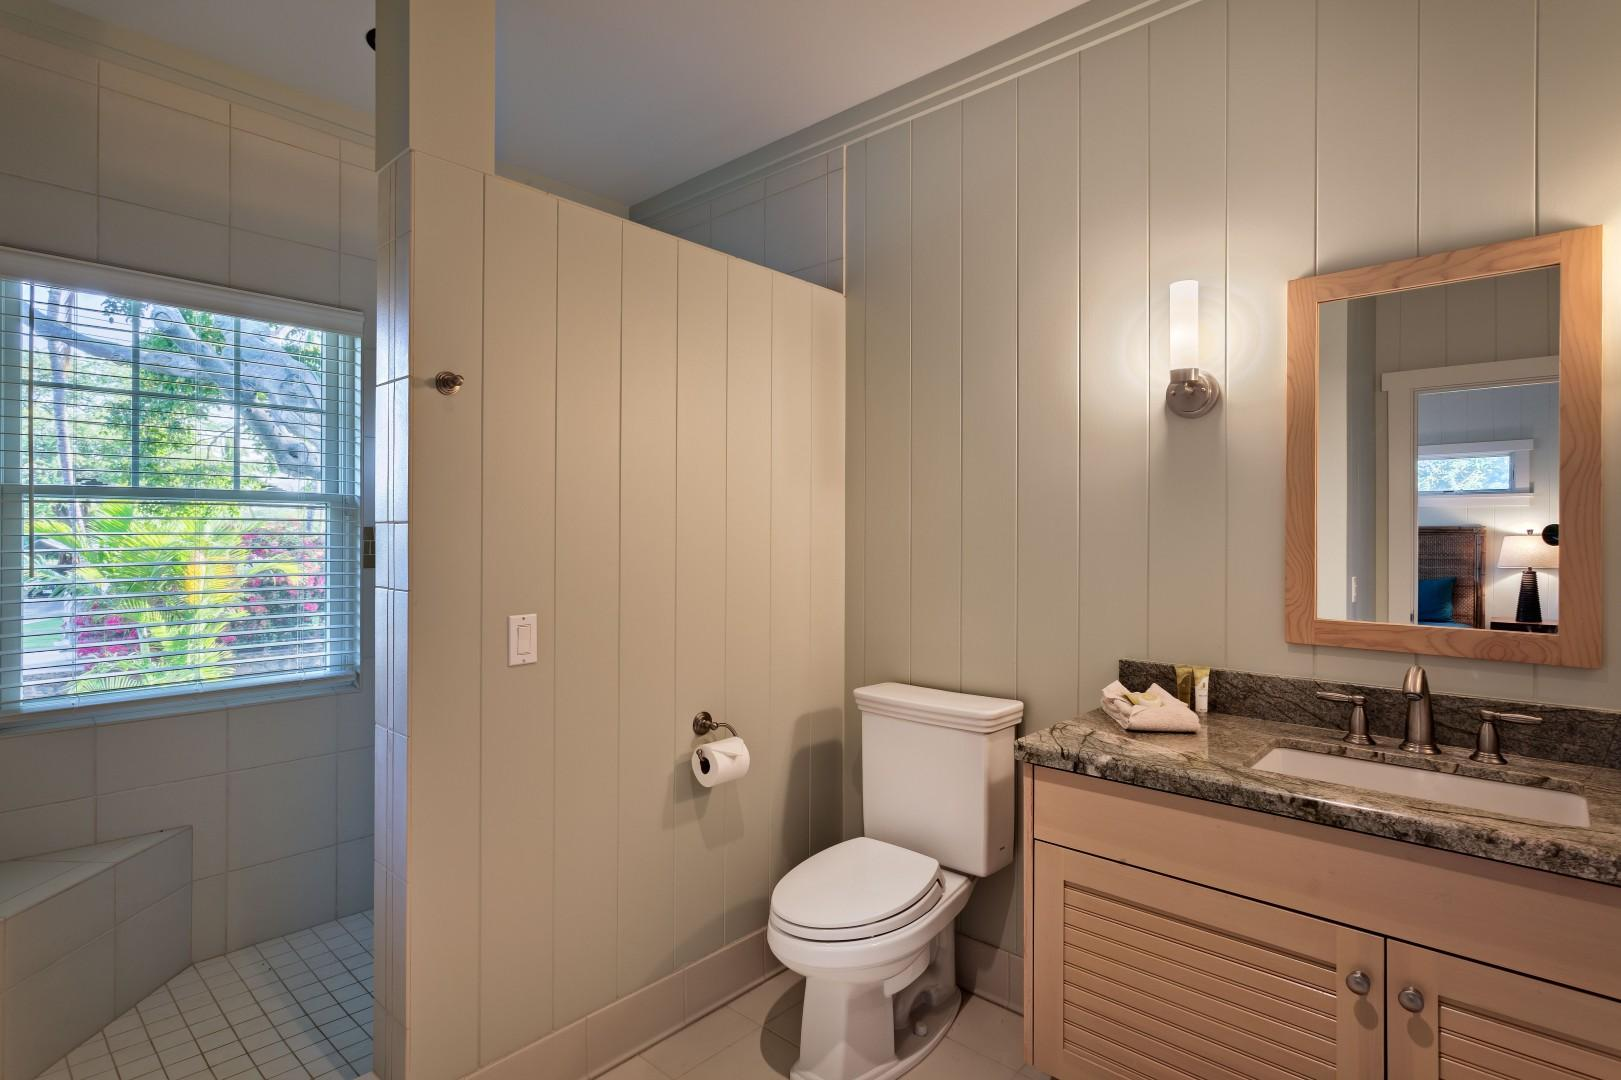 Ohana Guest Cottage Ensuite Bath w/ Spacious Tiled Shower w/ Two Shower Heads